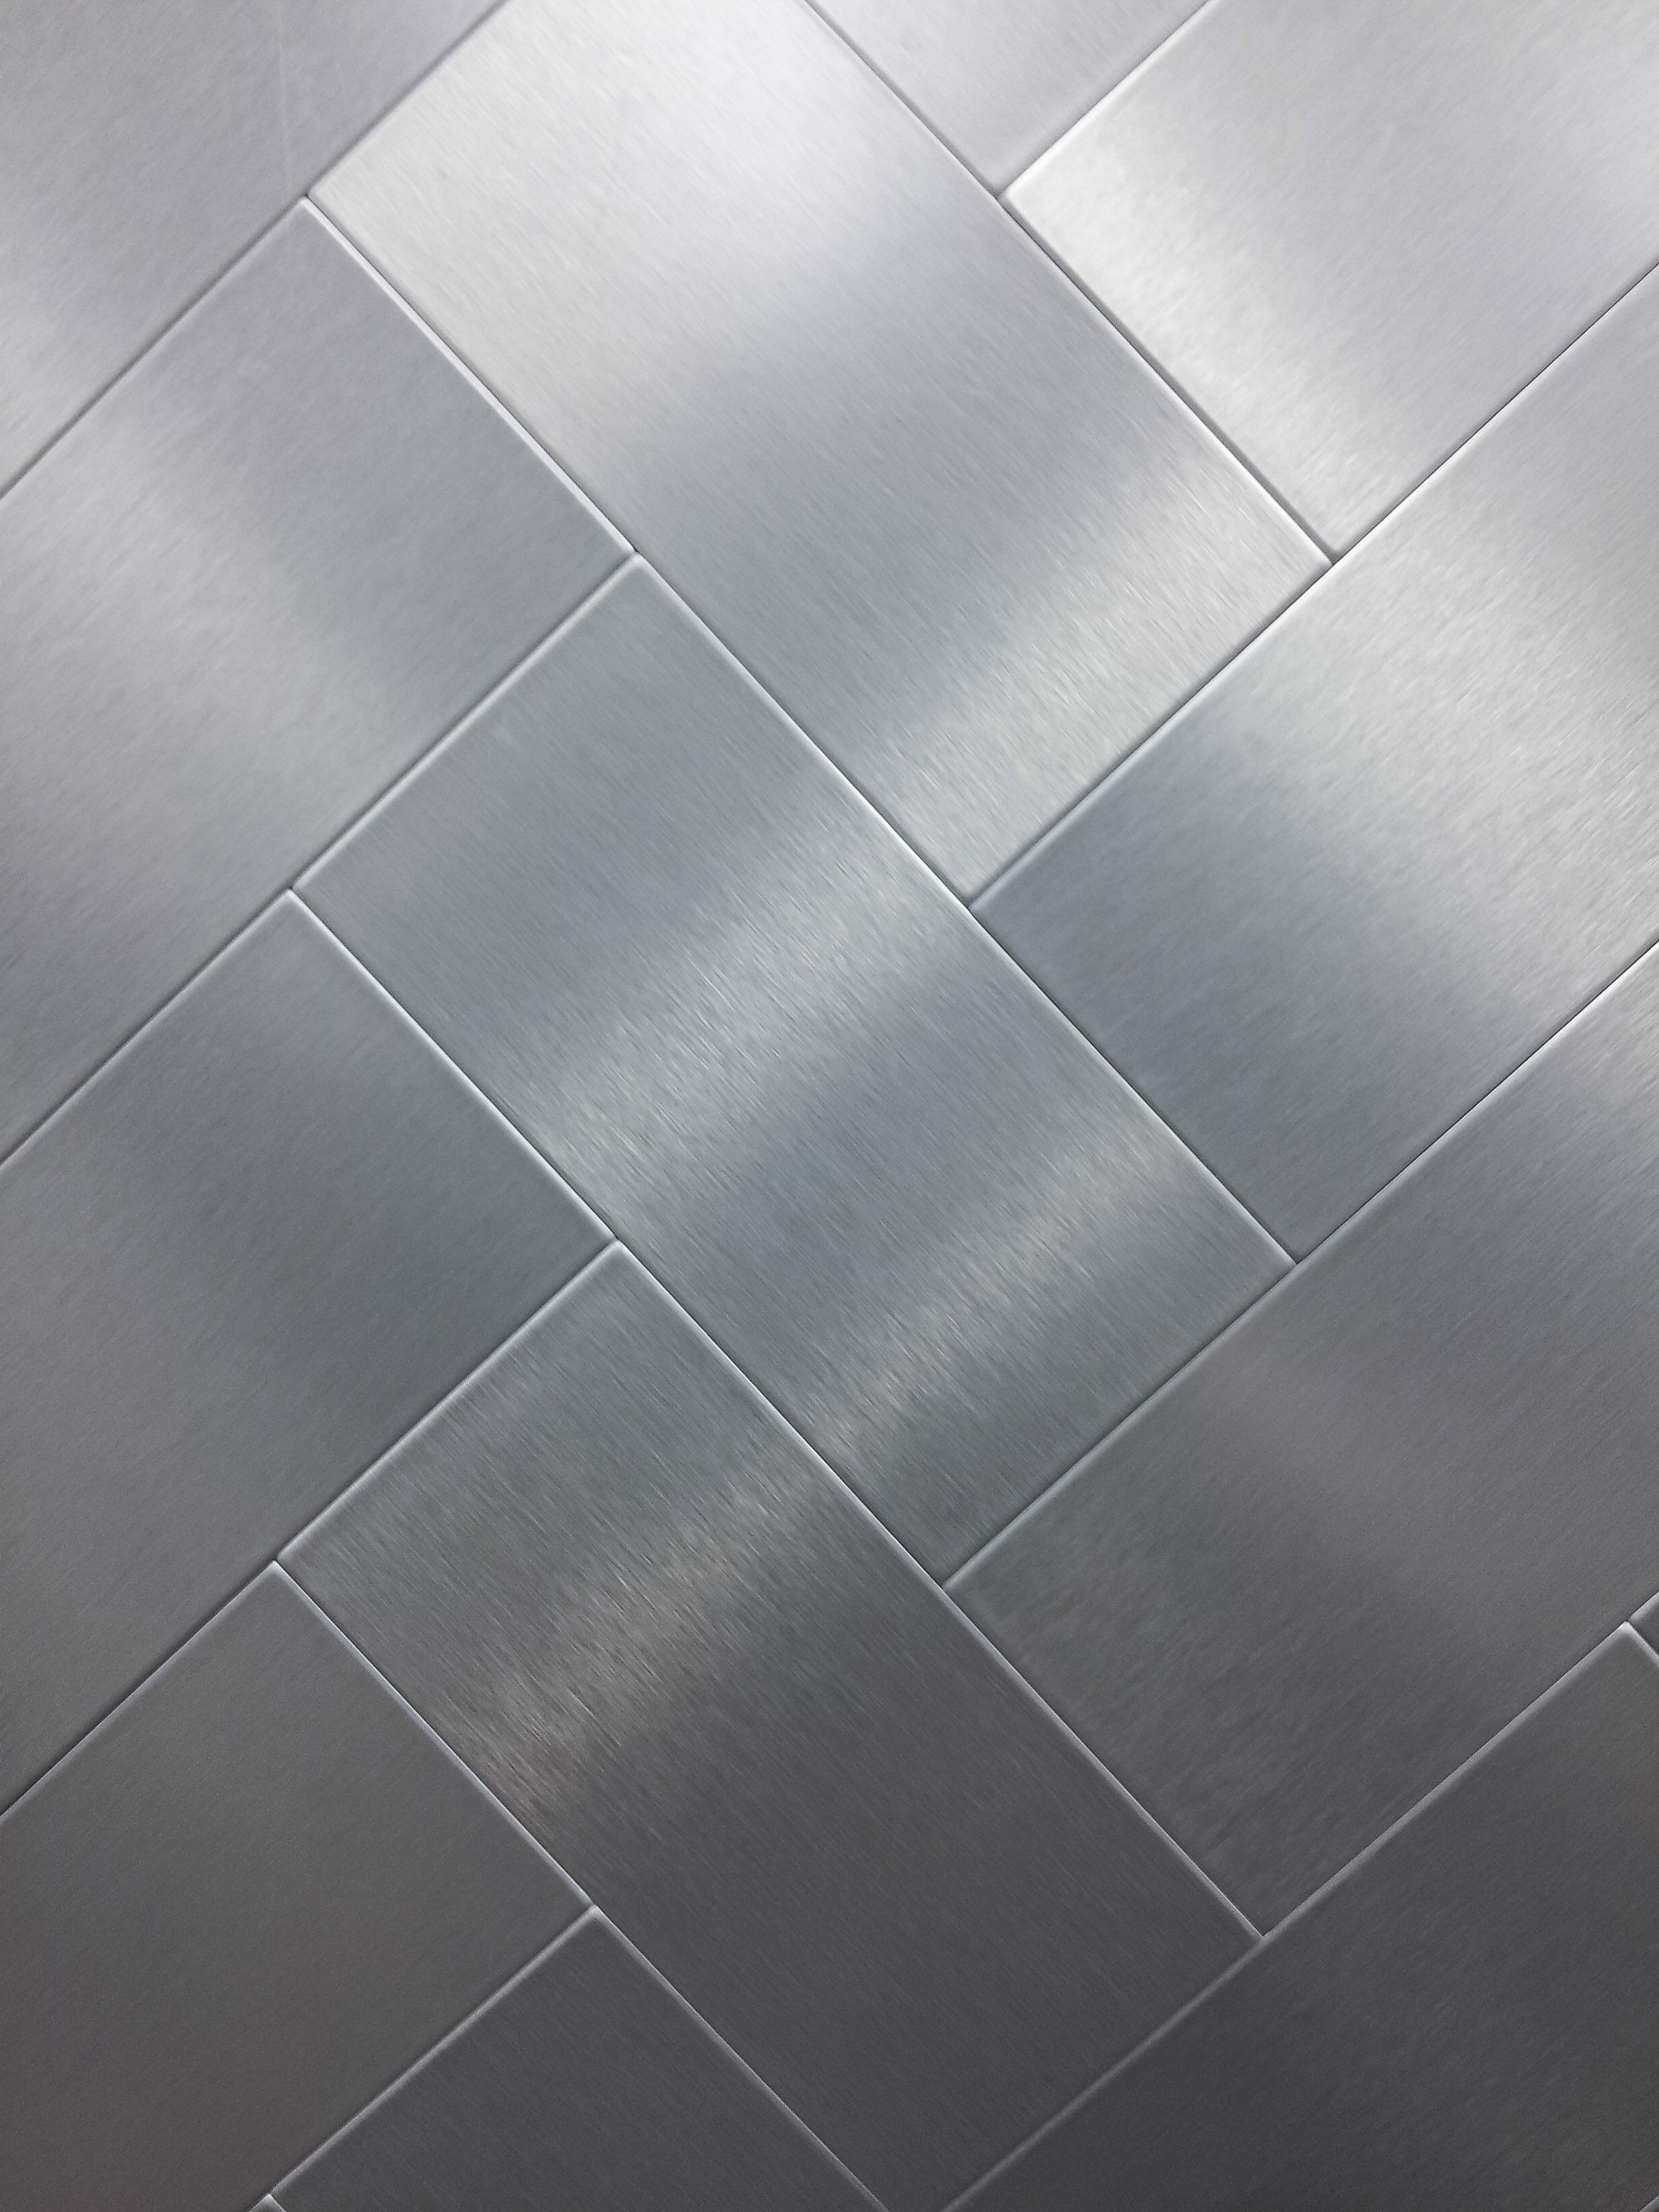 Explore Texture Tile Metal And More